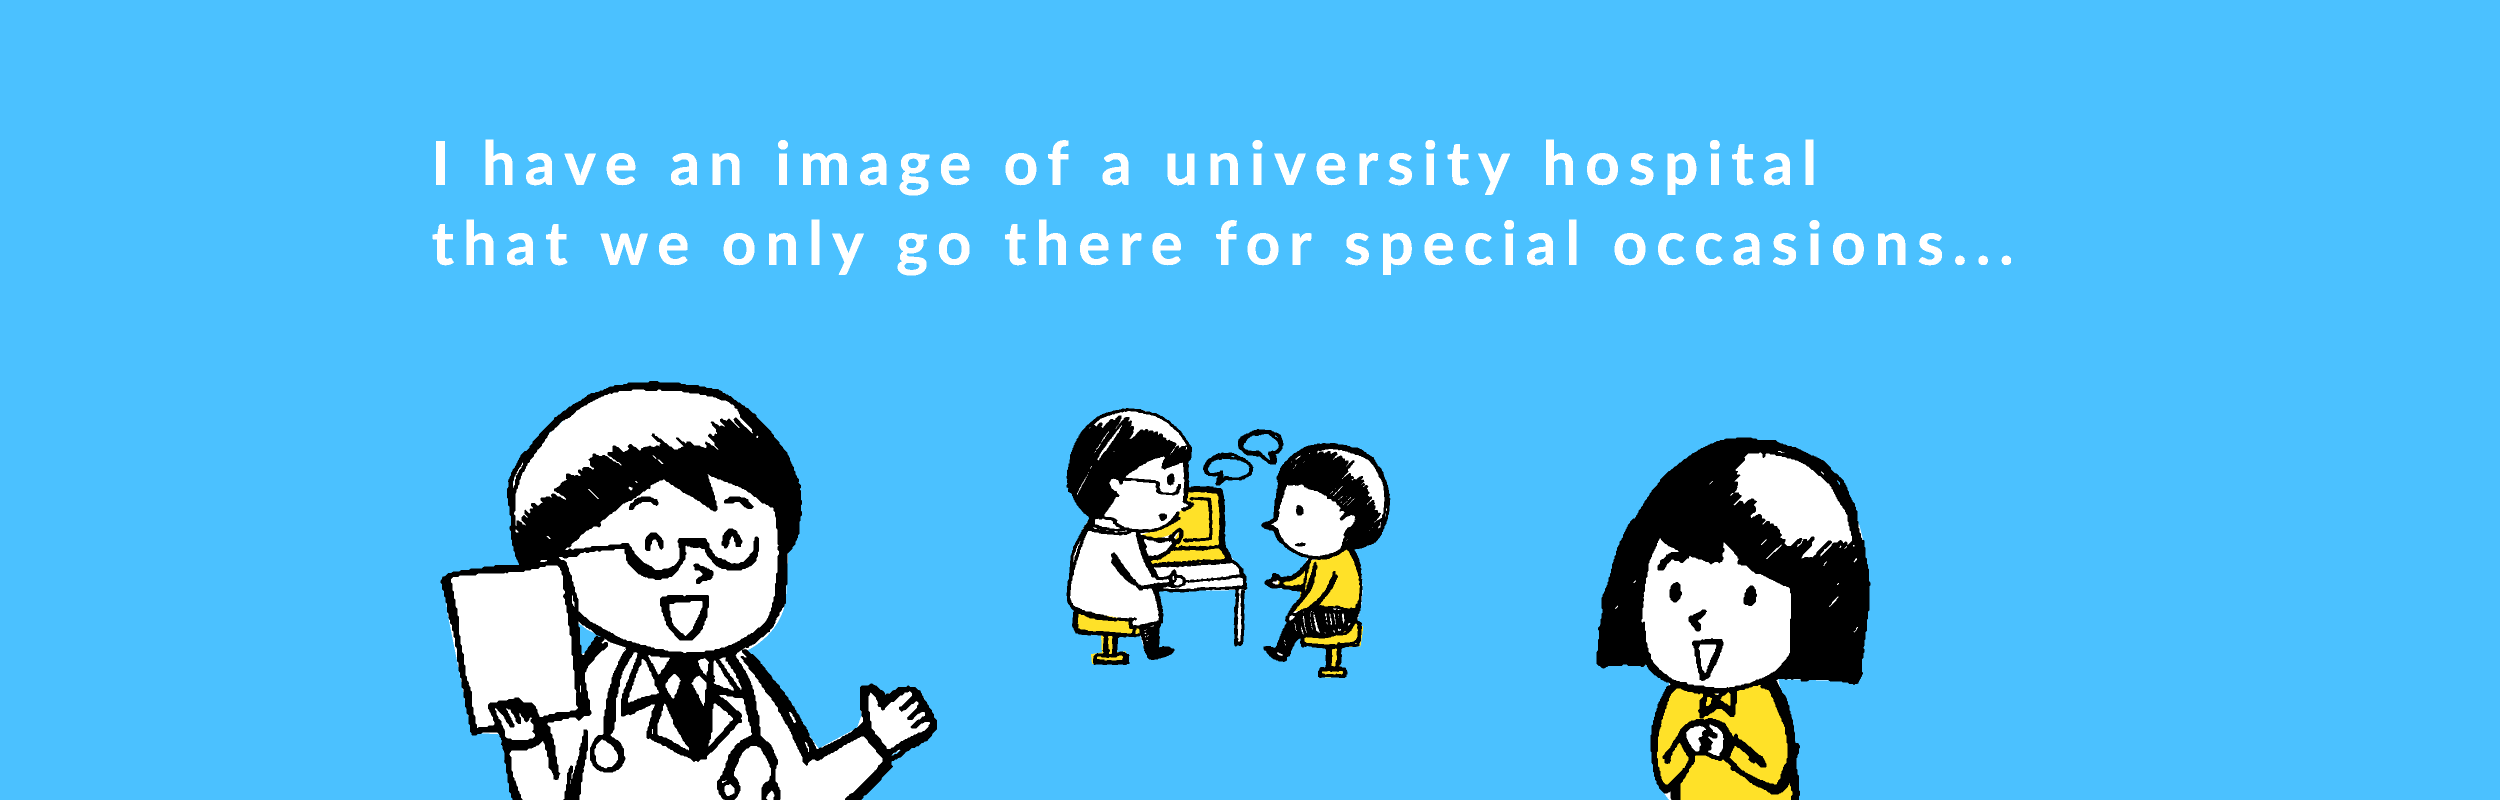 I have an image of a university hospital that we only go there for special occasions...